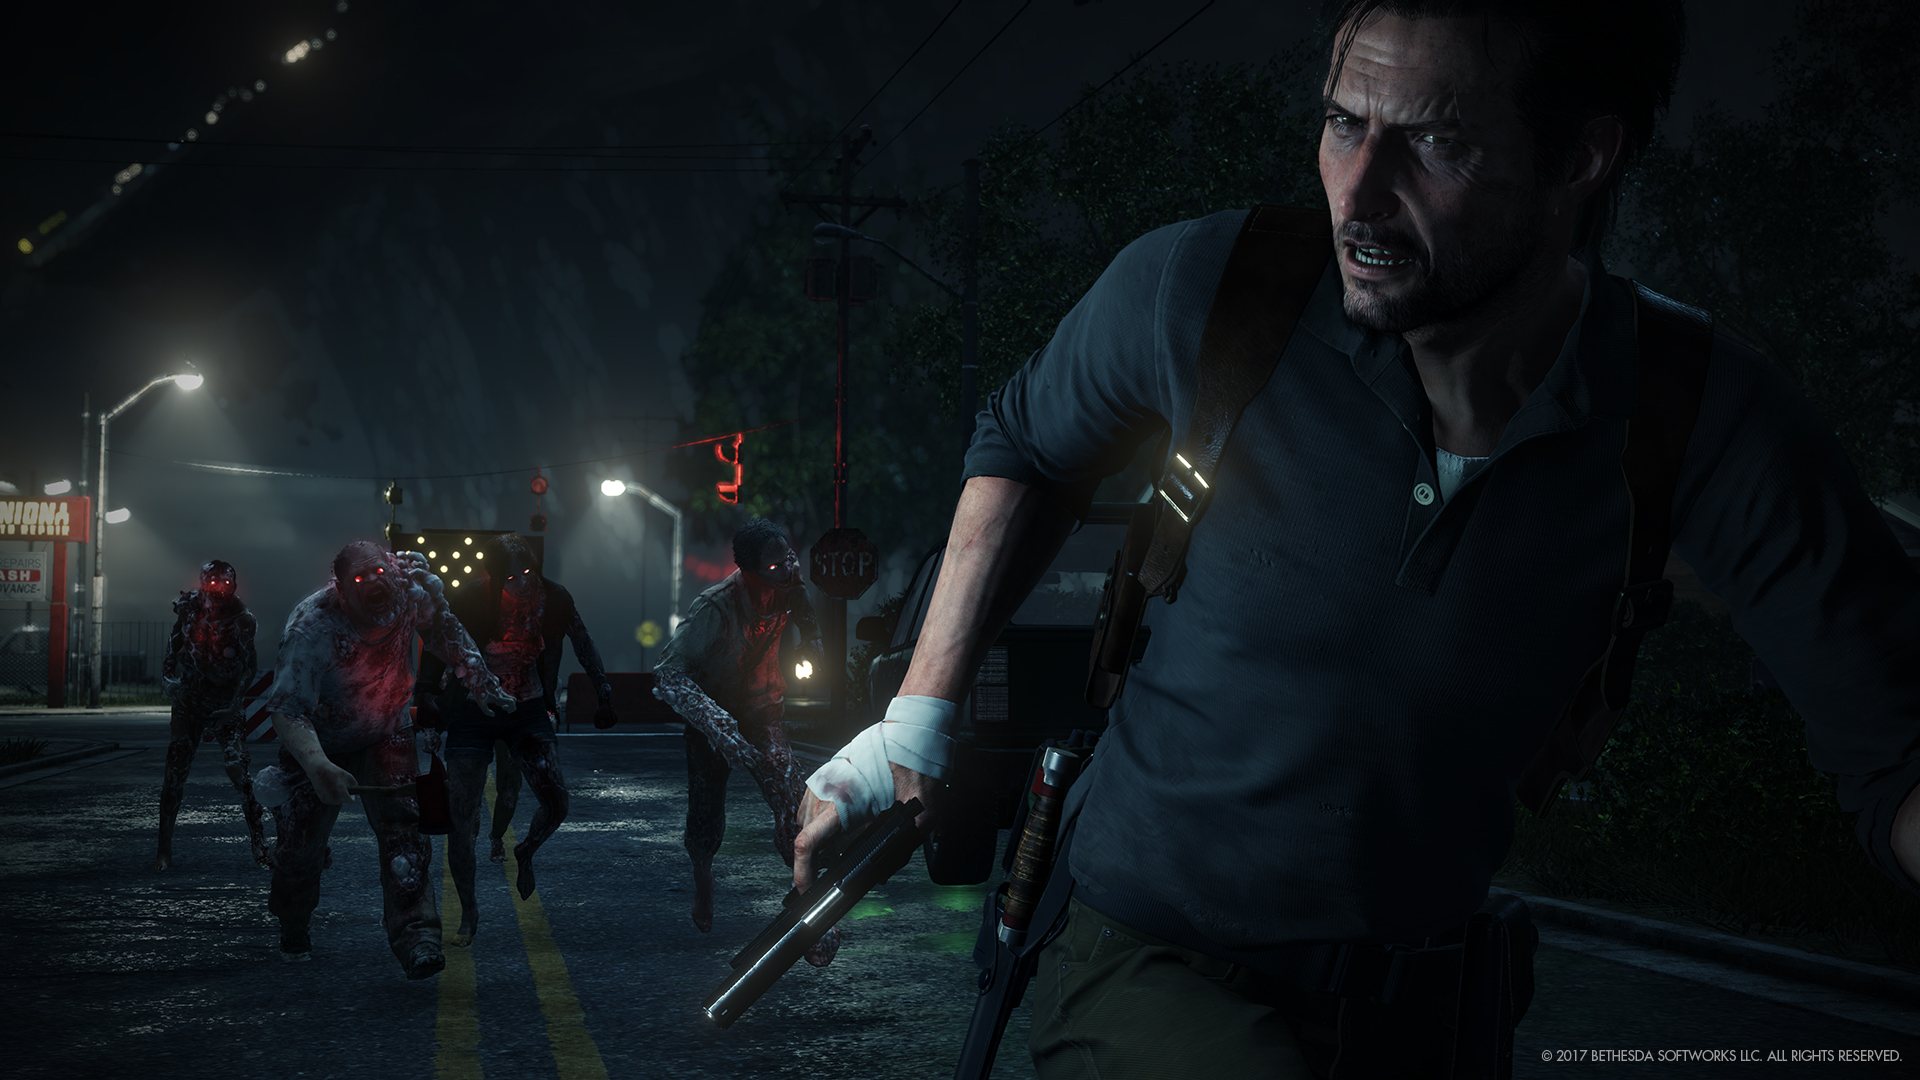 THE EVIL WITHIN 2 - REVIEW